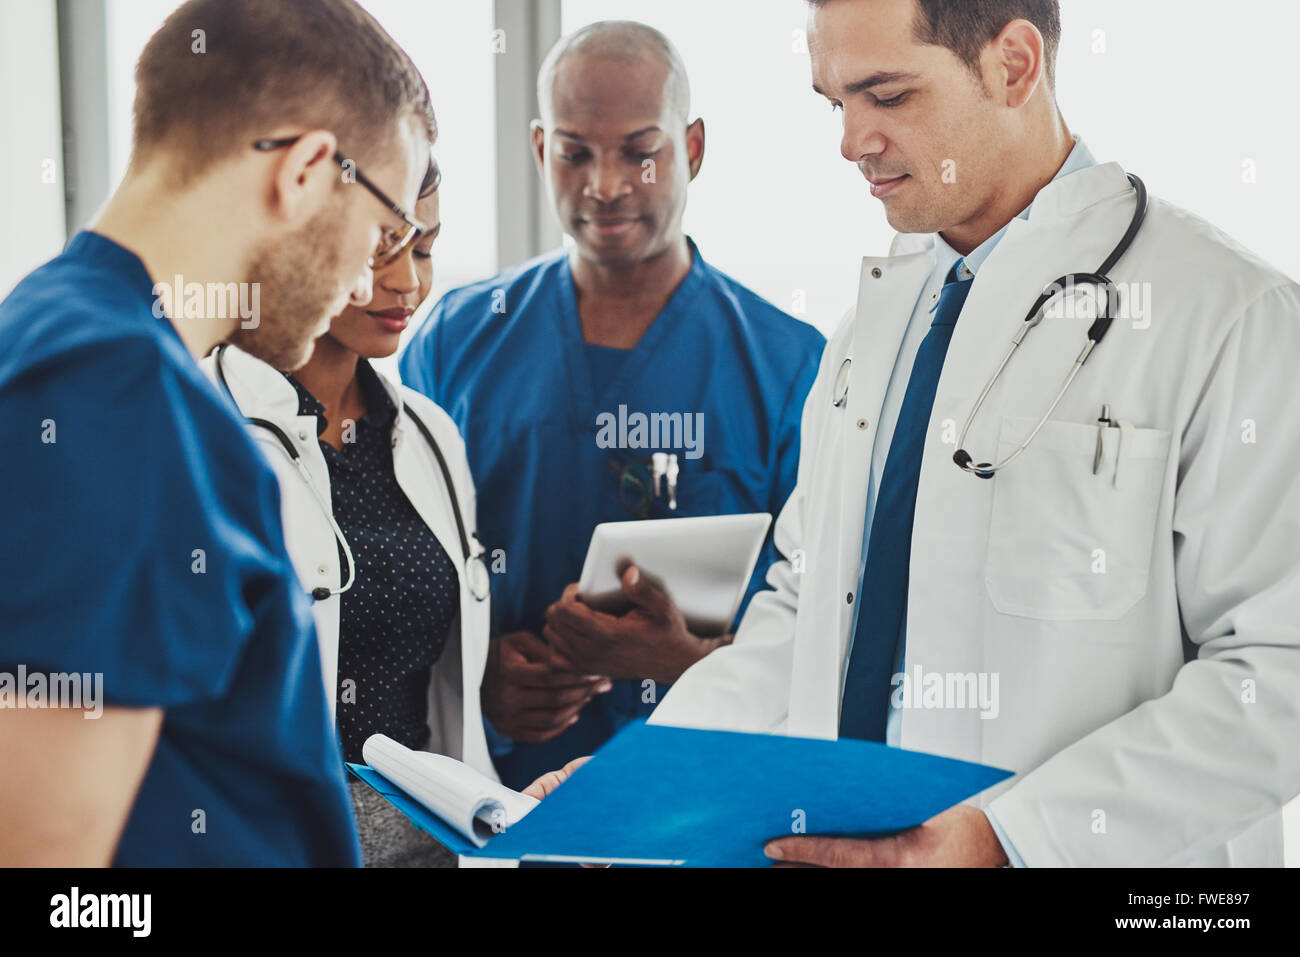 Doctors having a conversation looking at documents, mixed races, surgeons and doctors Stock Photo